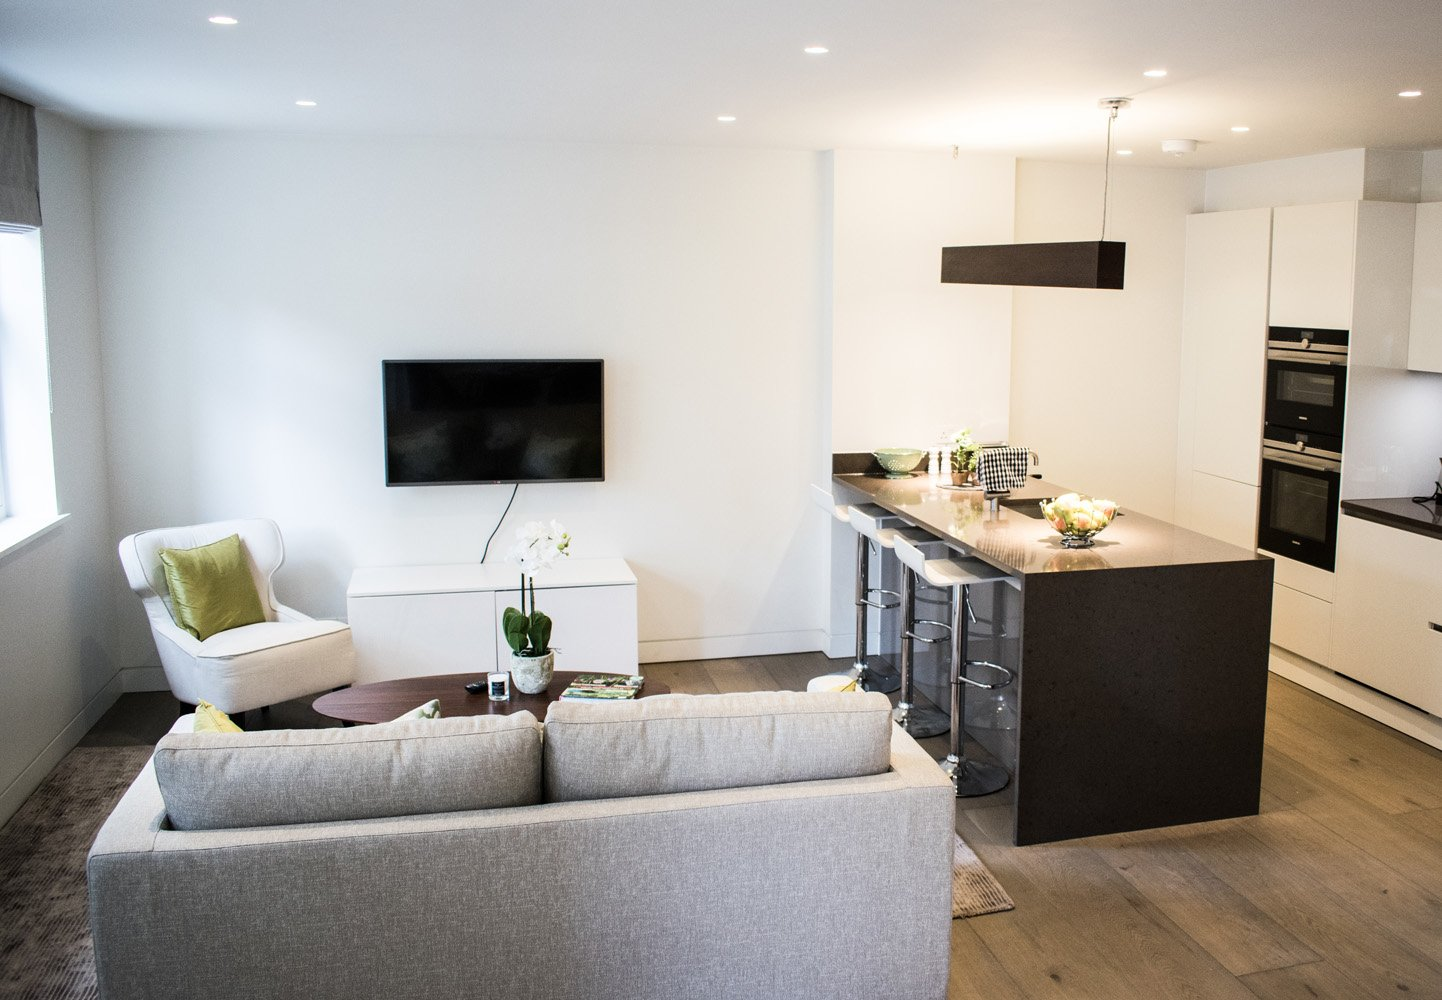 Marylebone-Luxury-Accommodation-Central-London-Serviced-Apartments-Near-Oxford-Street,-Bond-Street-&-Hyde-Park-Urban-Stay-9